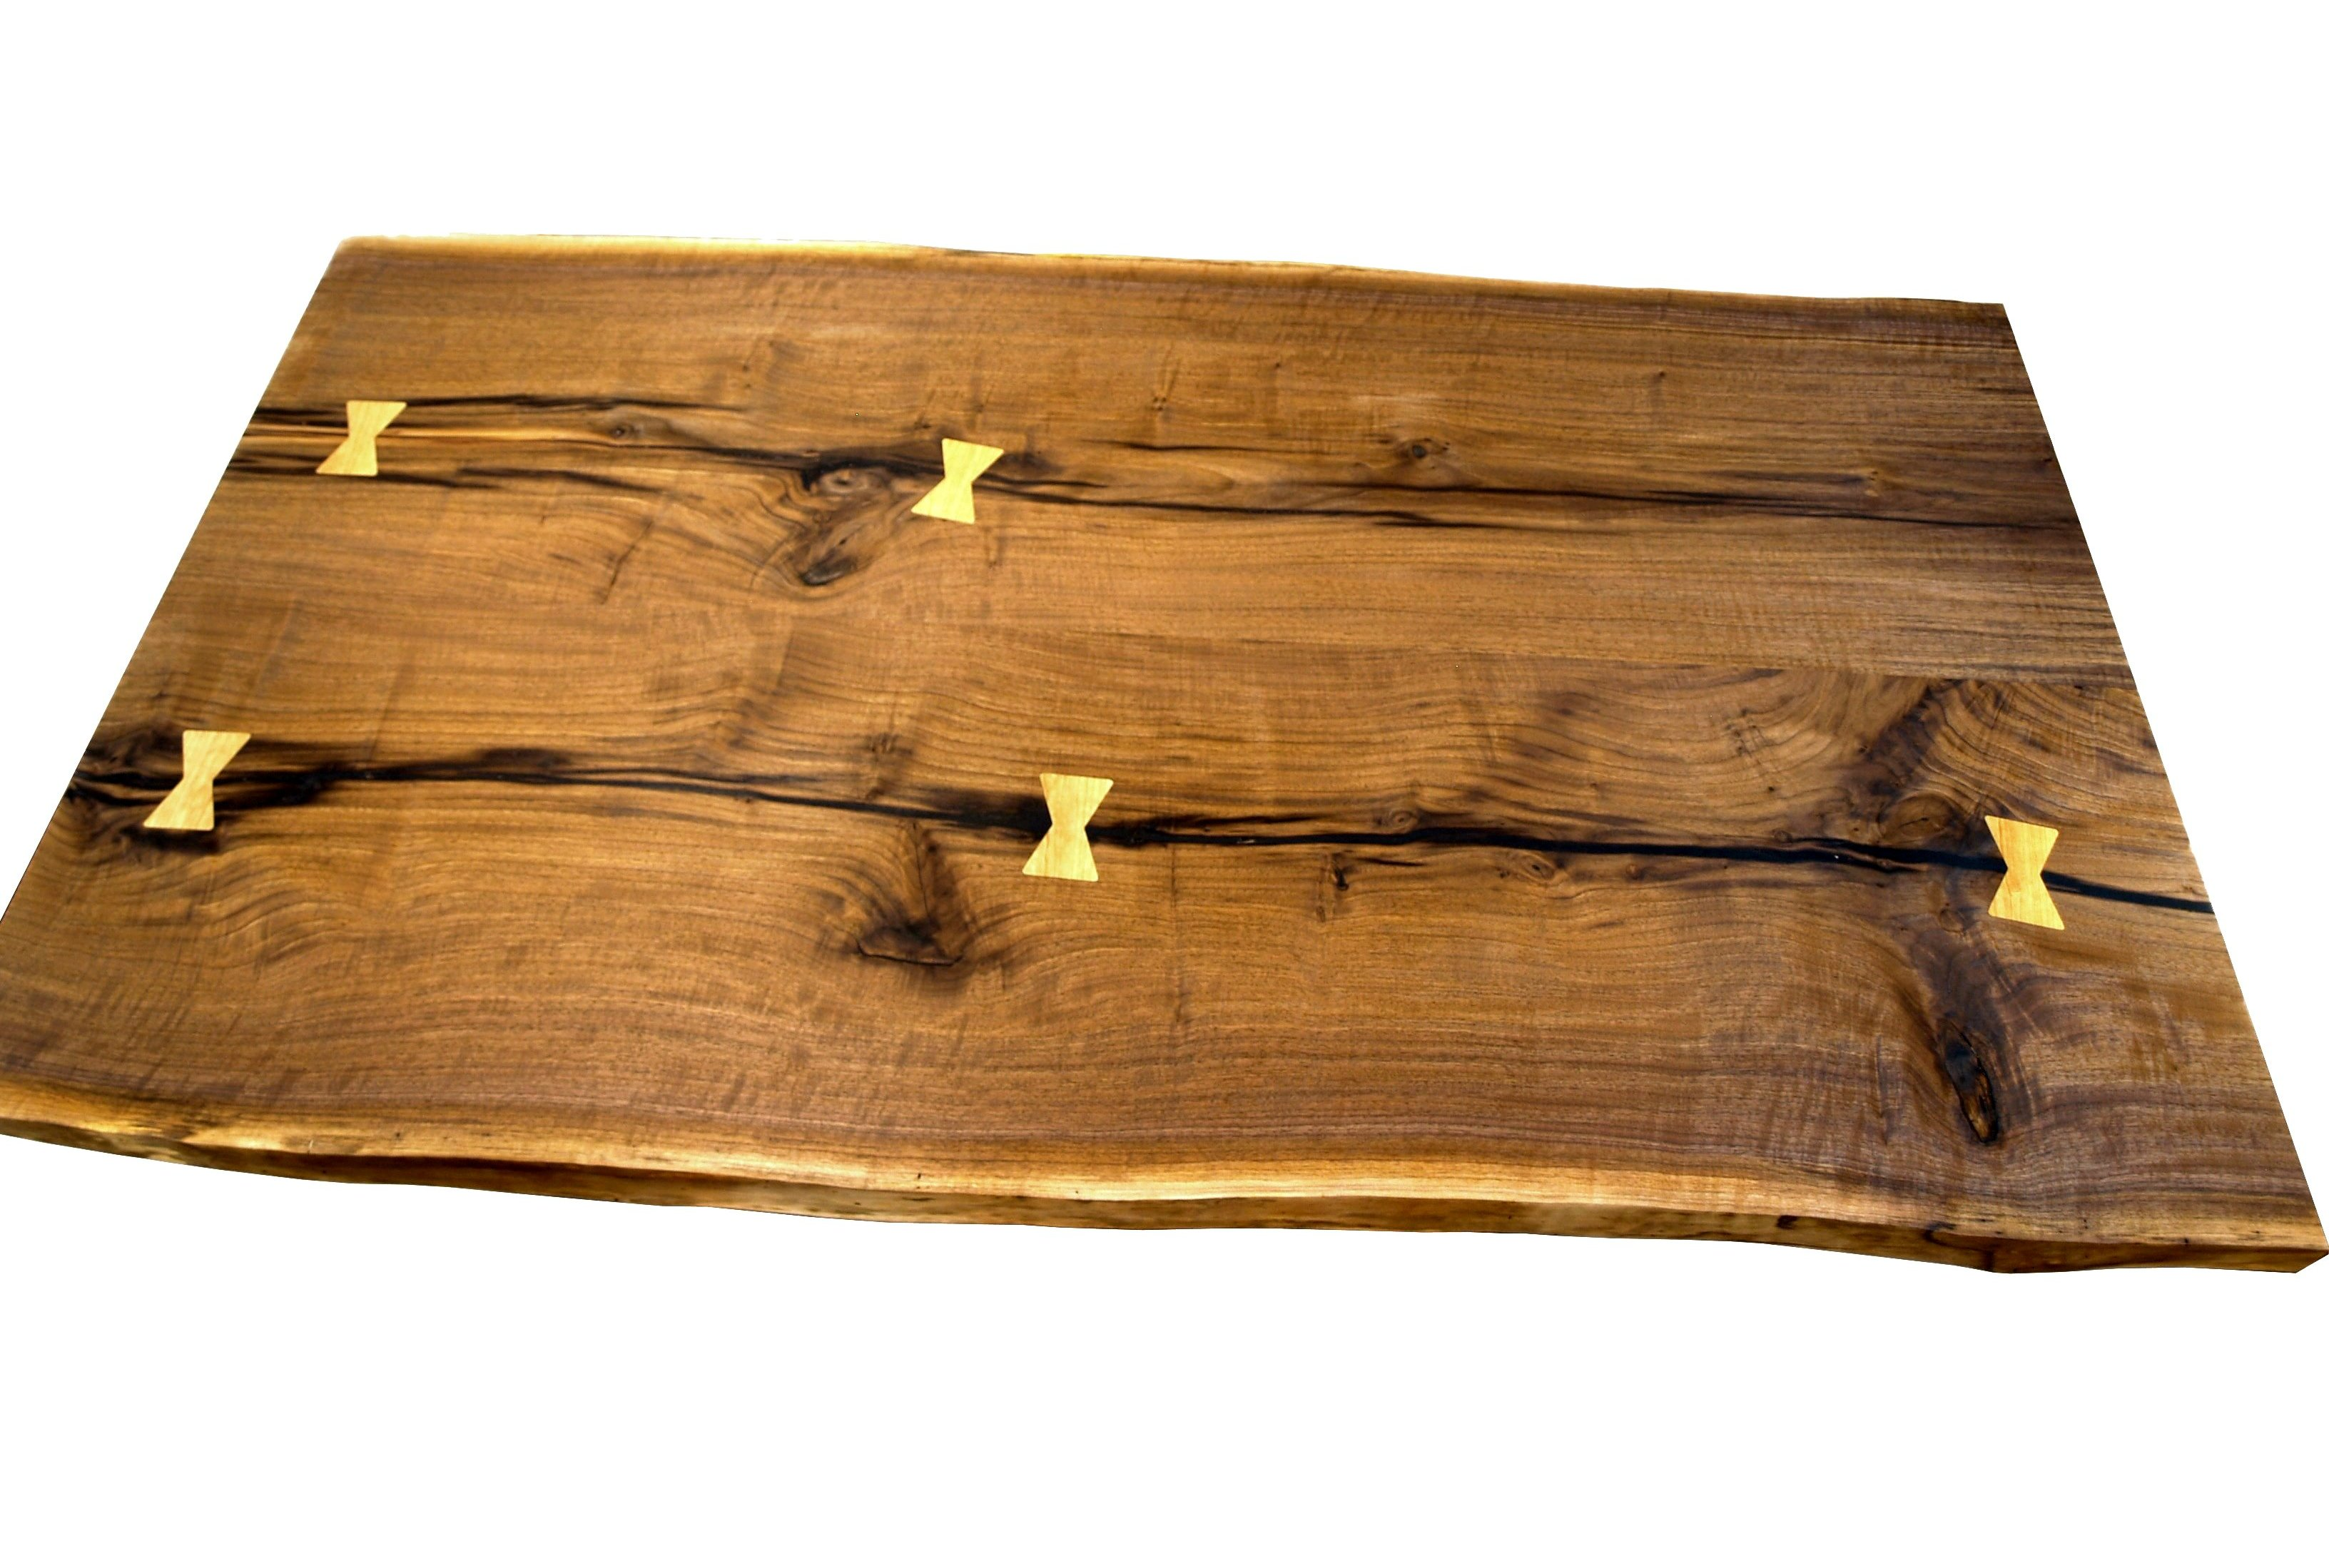 Genial Custom Walnut Slab Table Top With Maple Butterfly Inlays. Constructed From  One Long Slab Cut